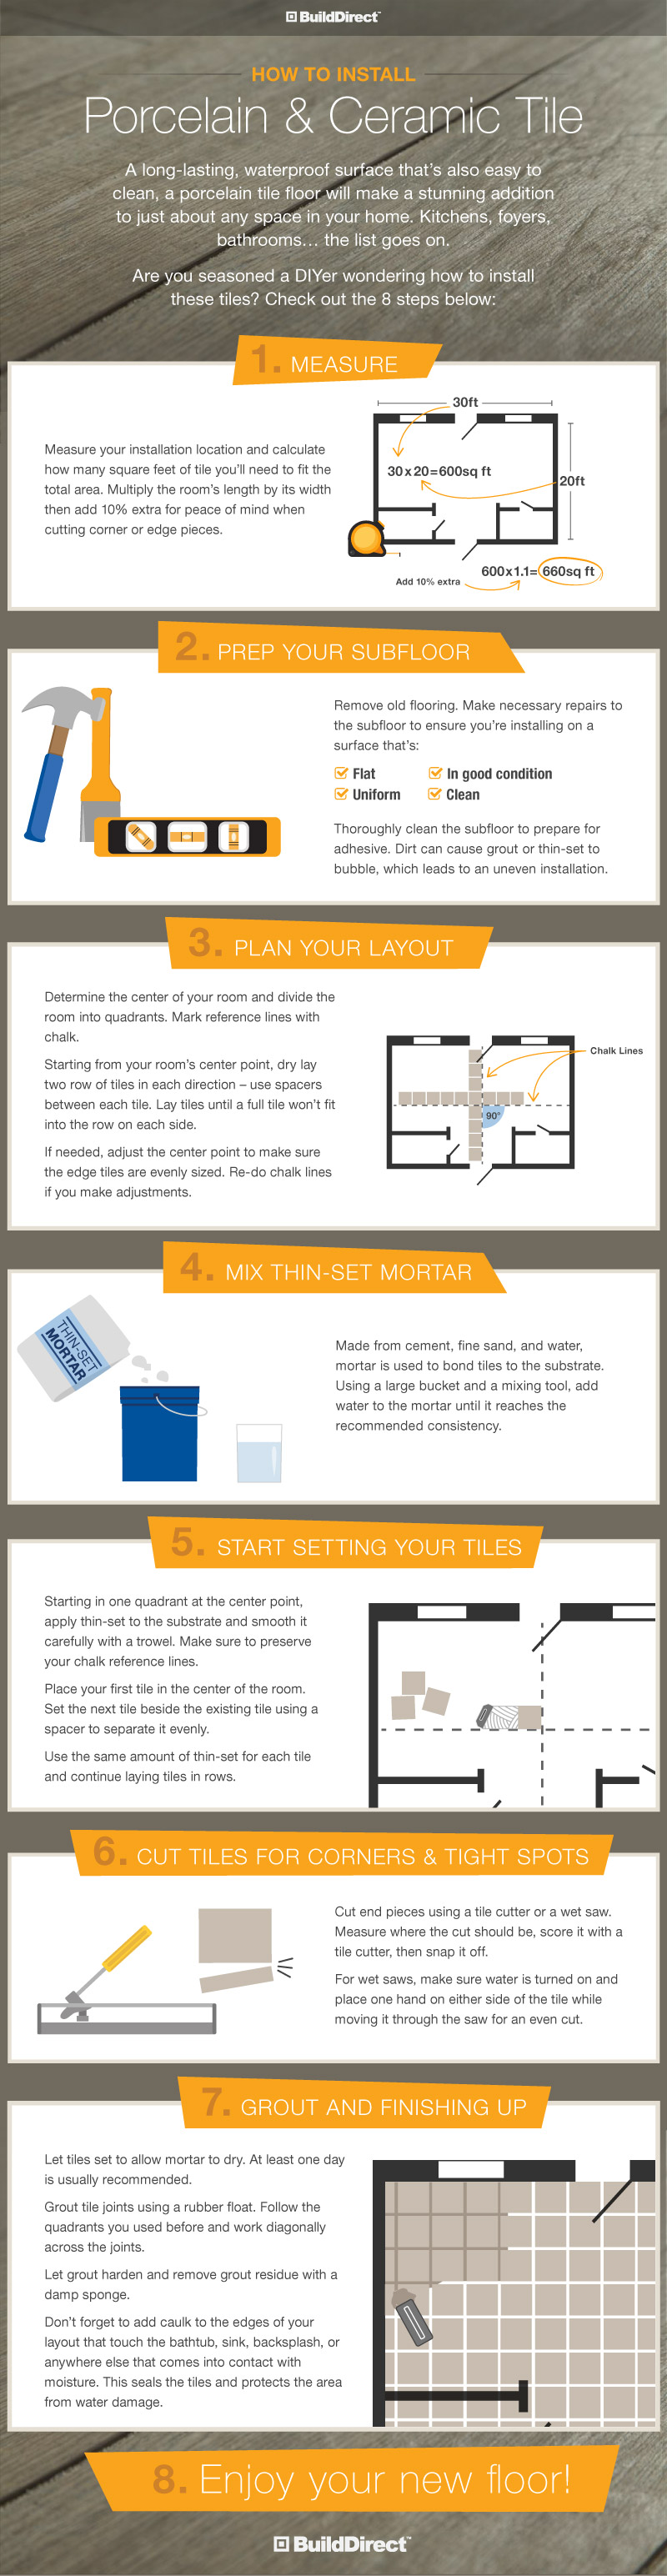 How To Lay Ceramic Porcelain Tile Infographic